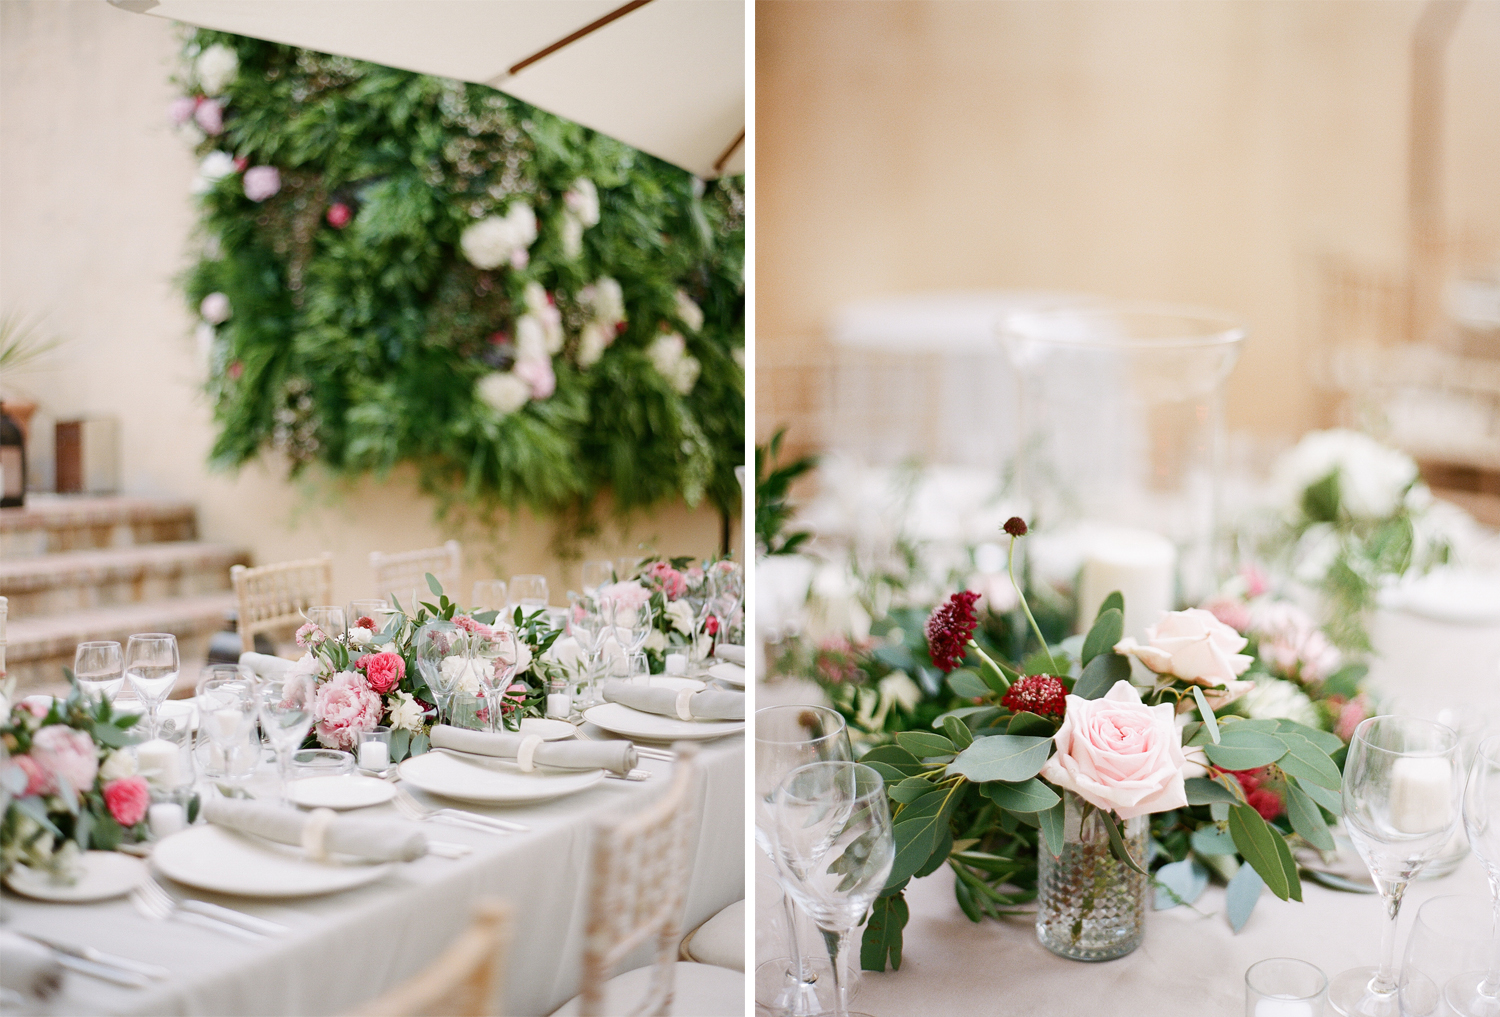 Reception floral arrangements in blush and burgundy for a ceremony in Provence, France; Sylvie Gil Photography